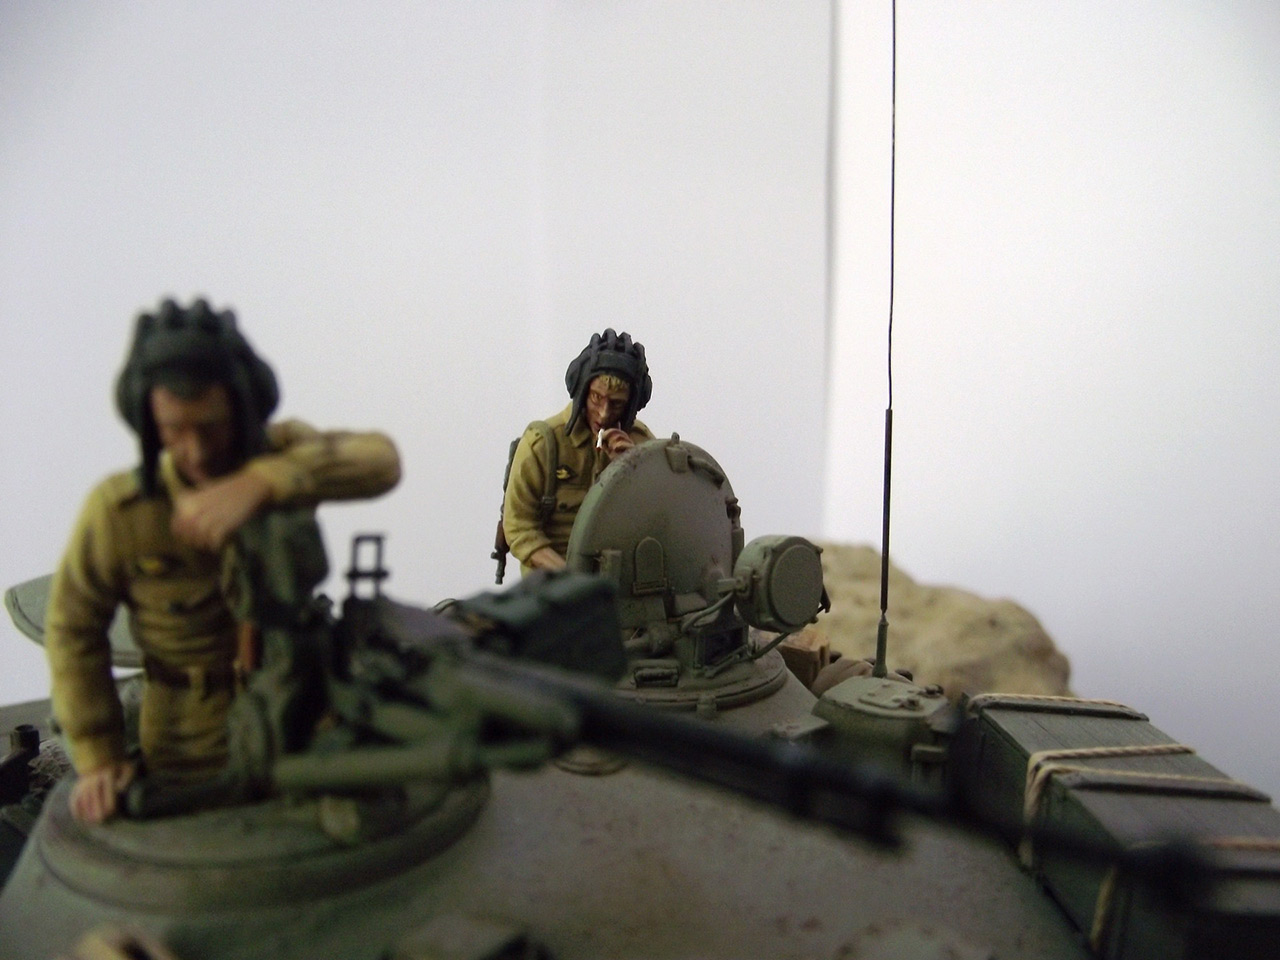 Dioramas and Vignettes: Afghan road, photo #18